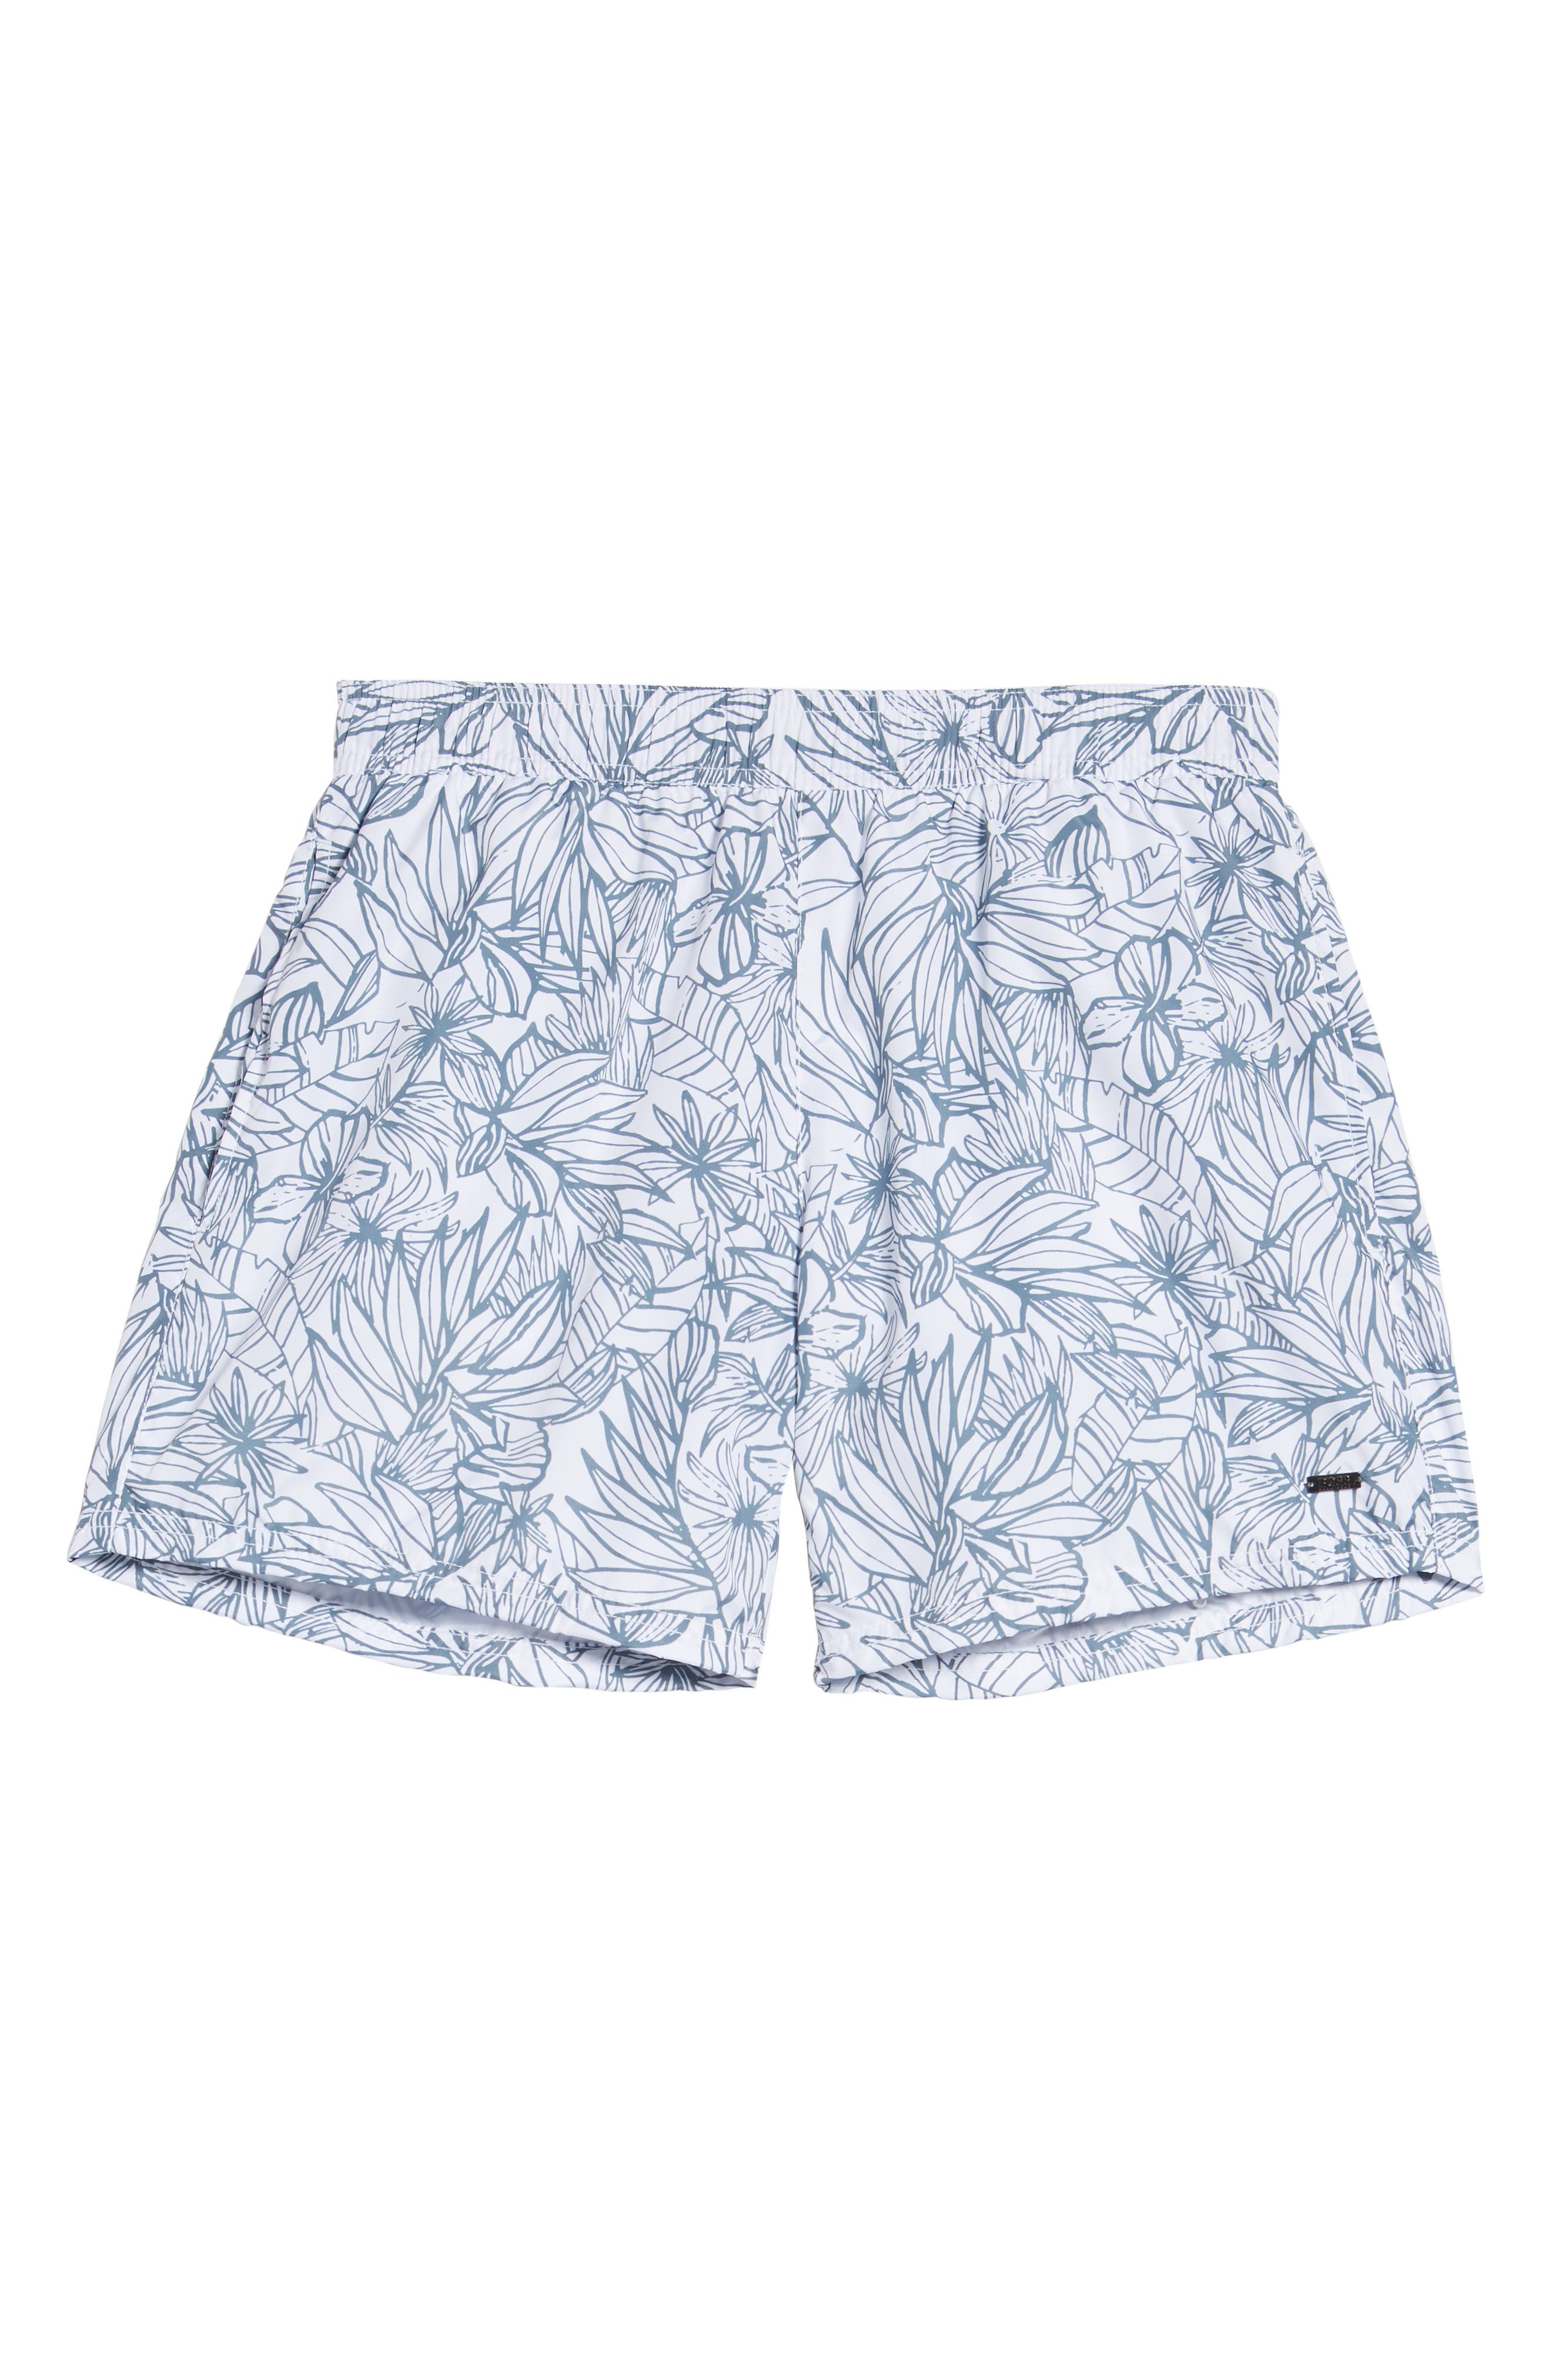 Needlefish Palm Swim Trunks,                             Alternate thumbnail 6, color,                             WHITE